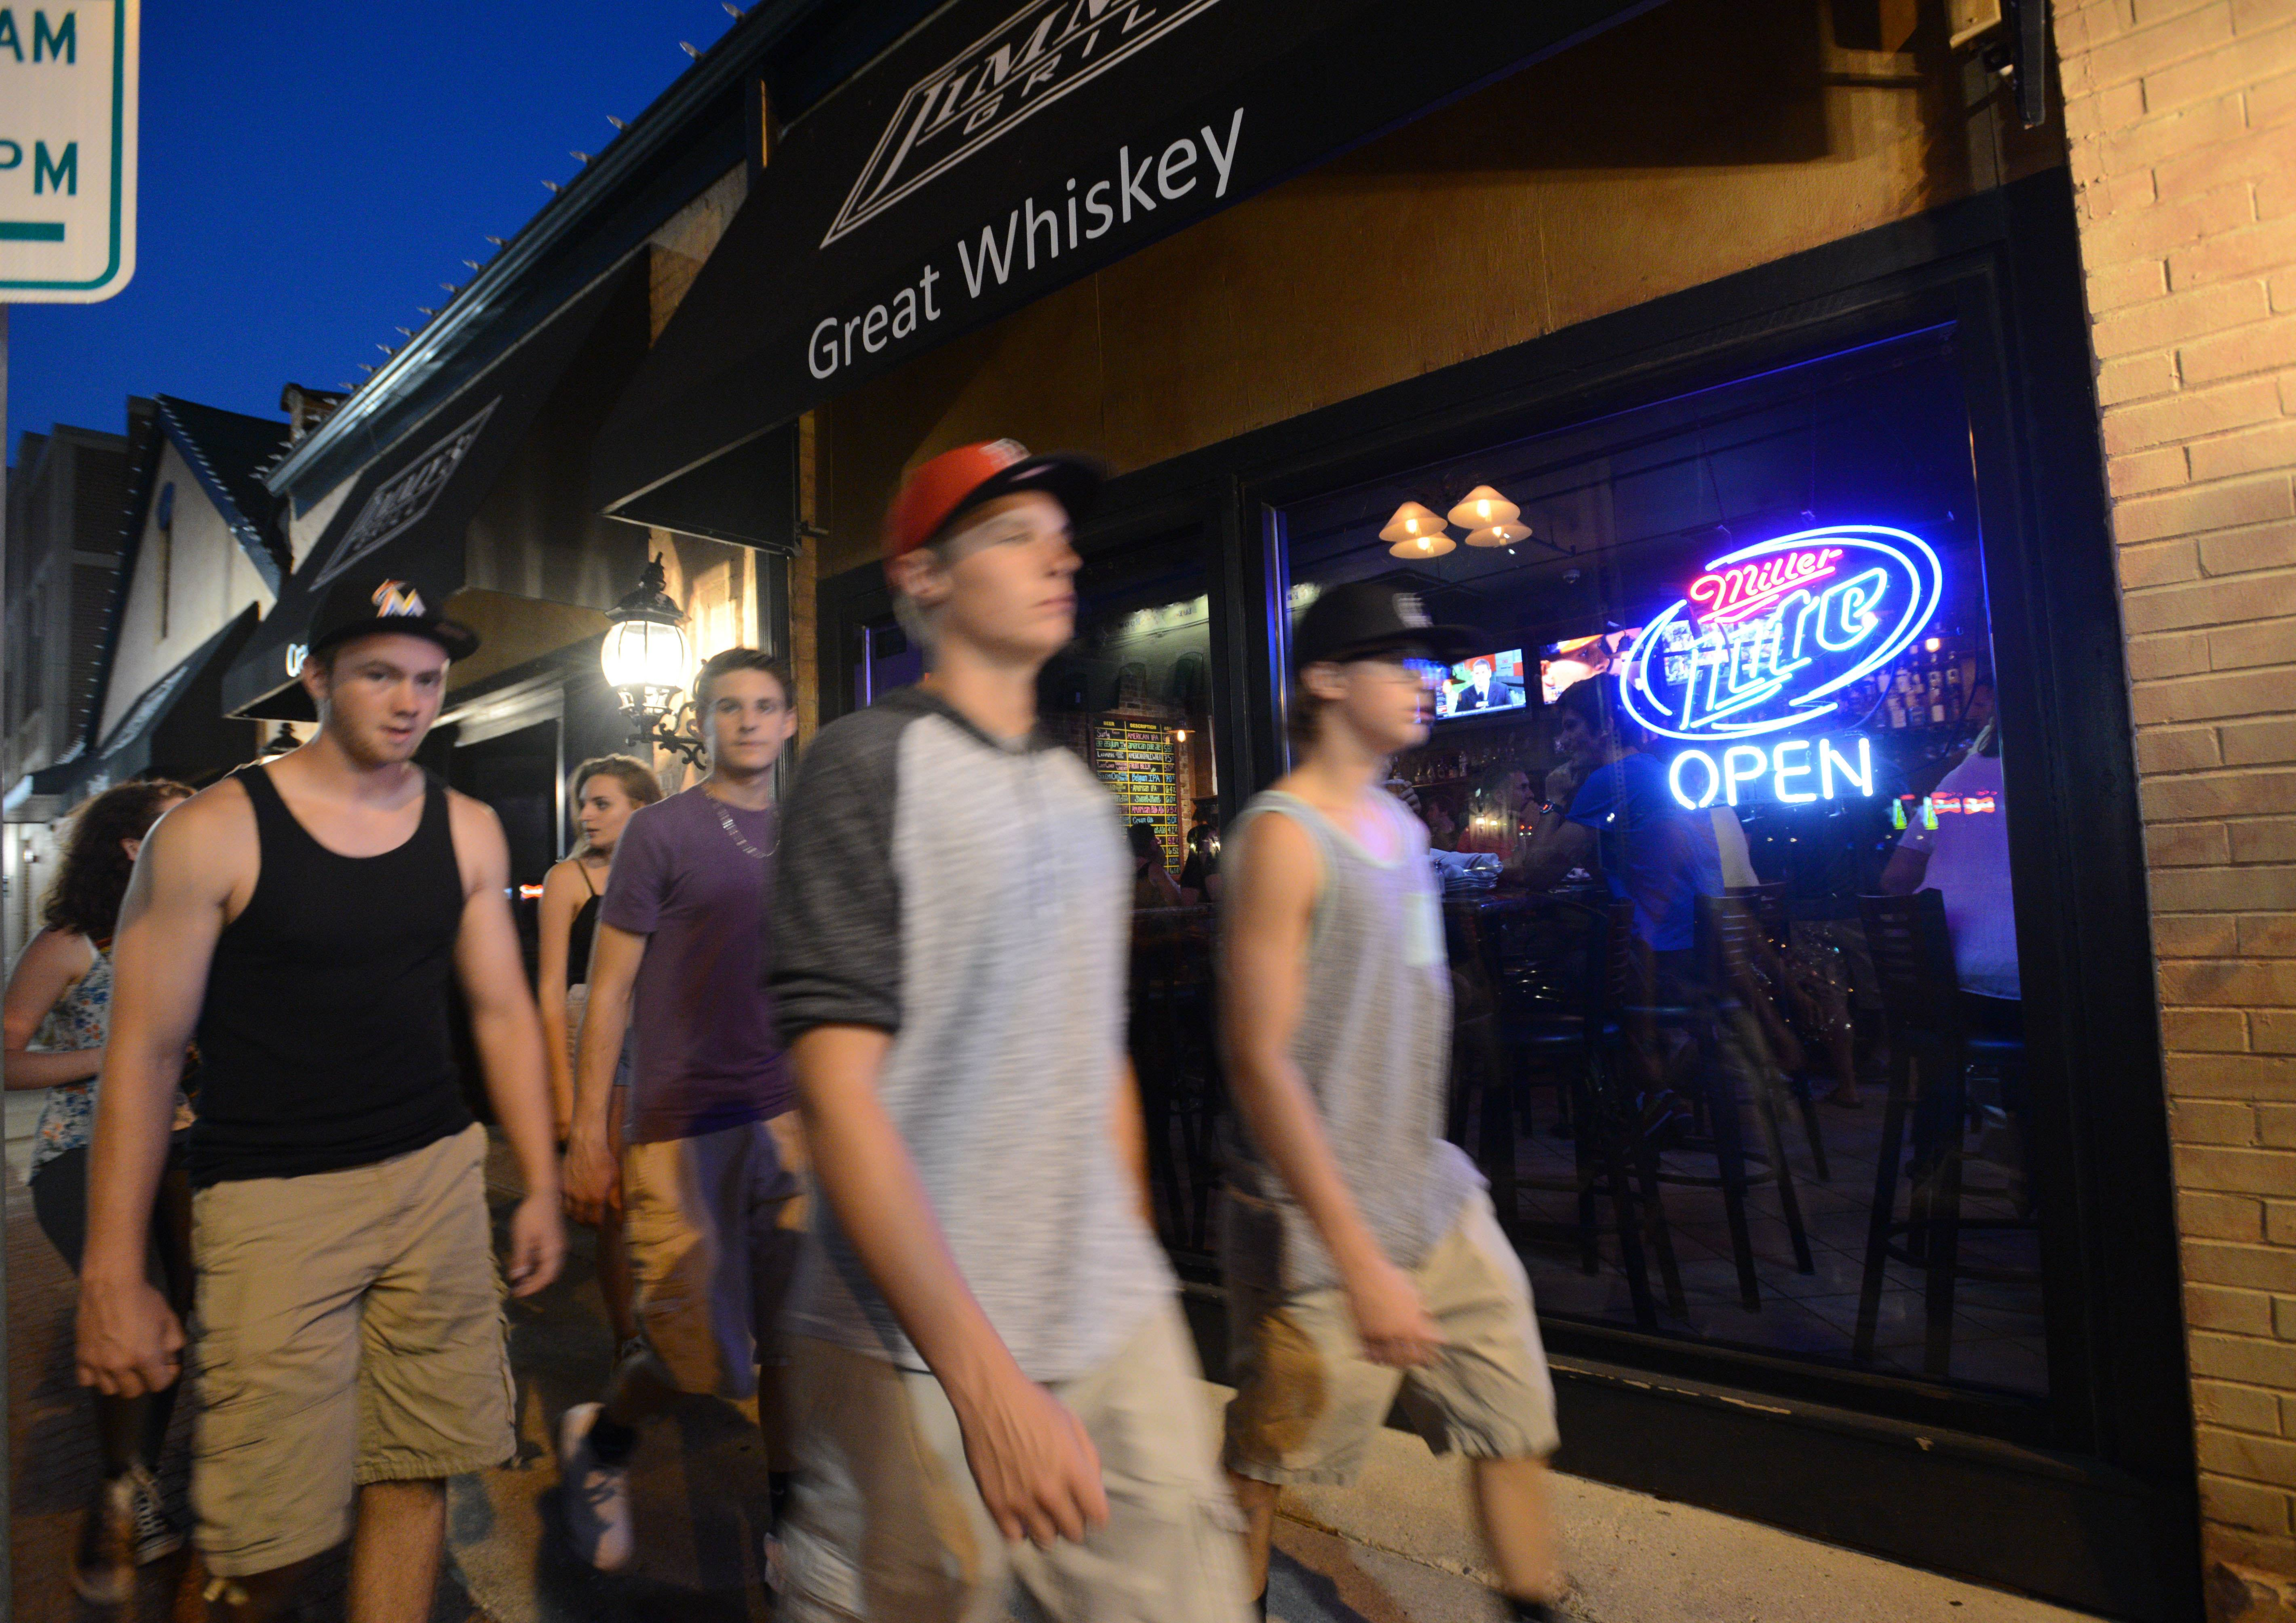 Naperville officials are considering restrictions to downtown night life that could result in shorter bar hours, no shots after midnight, cover charges after 10 p.m. or ID scanners at bar entrances.